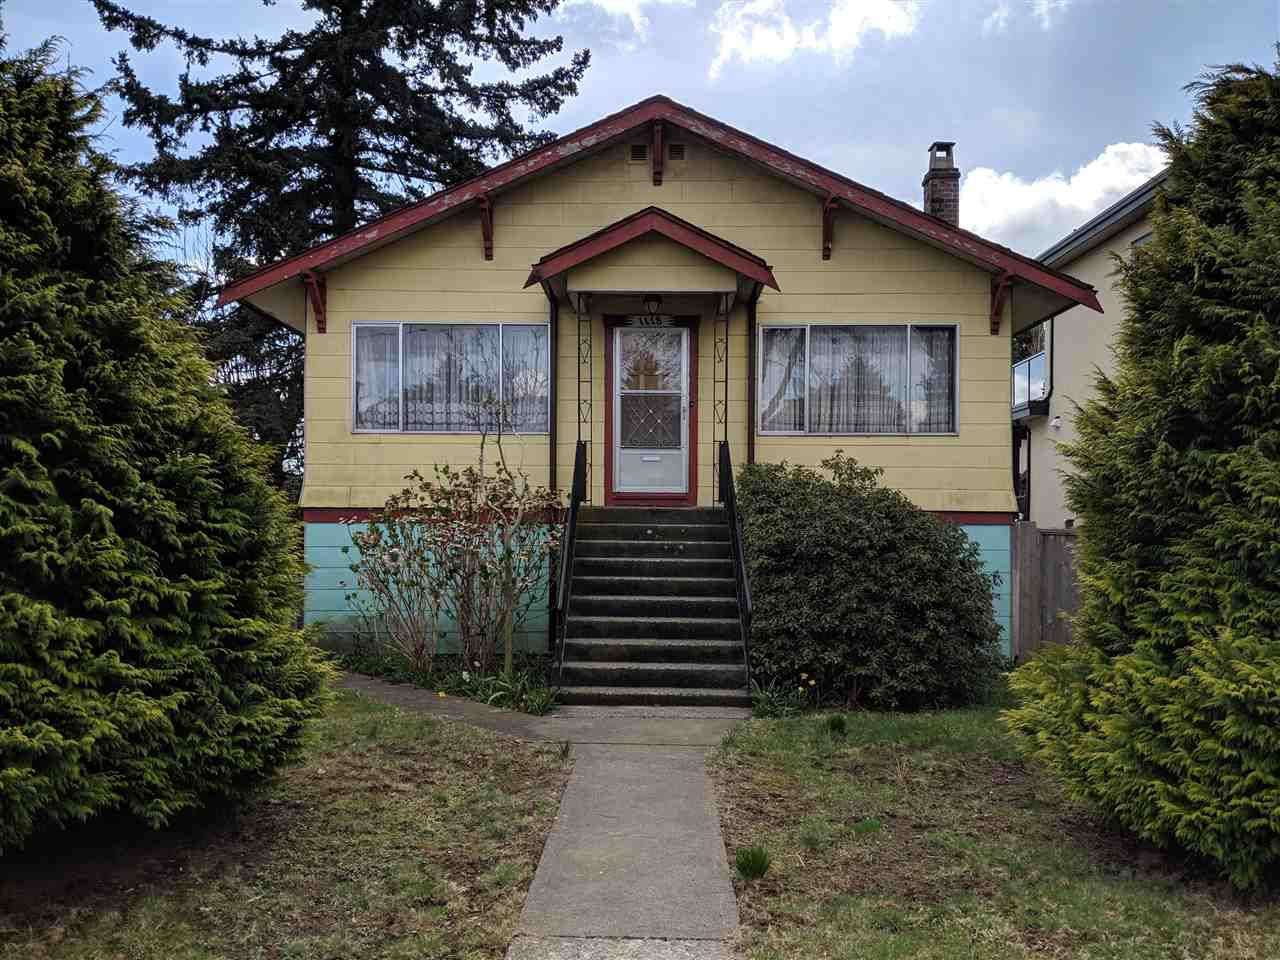 Main Photo: 1118 E 54TH Avenue in Vancouver: South Vancouver House for sale (Vancouver East)  : MLS®# R2355653